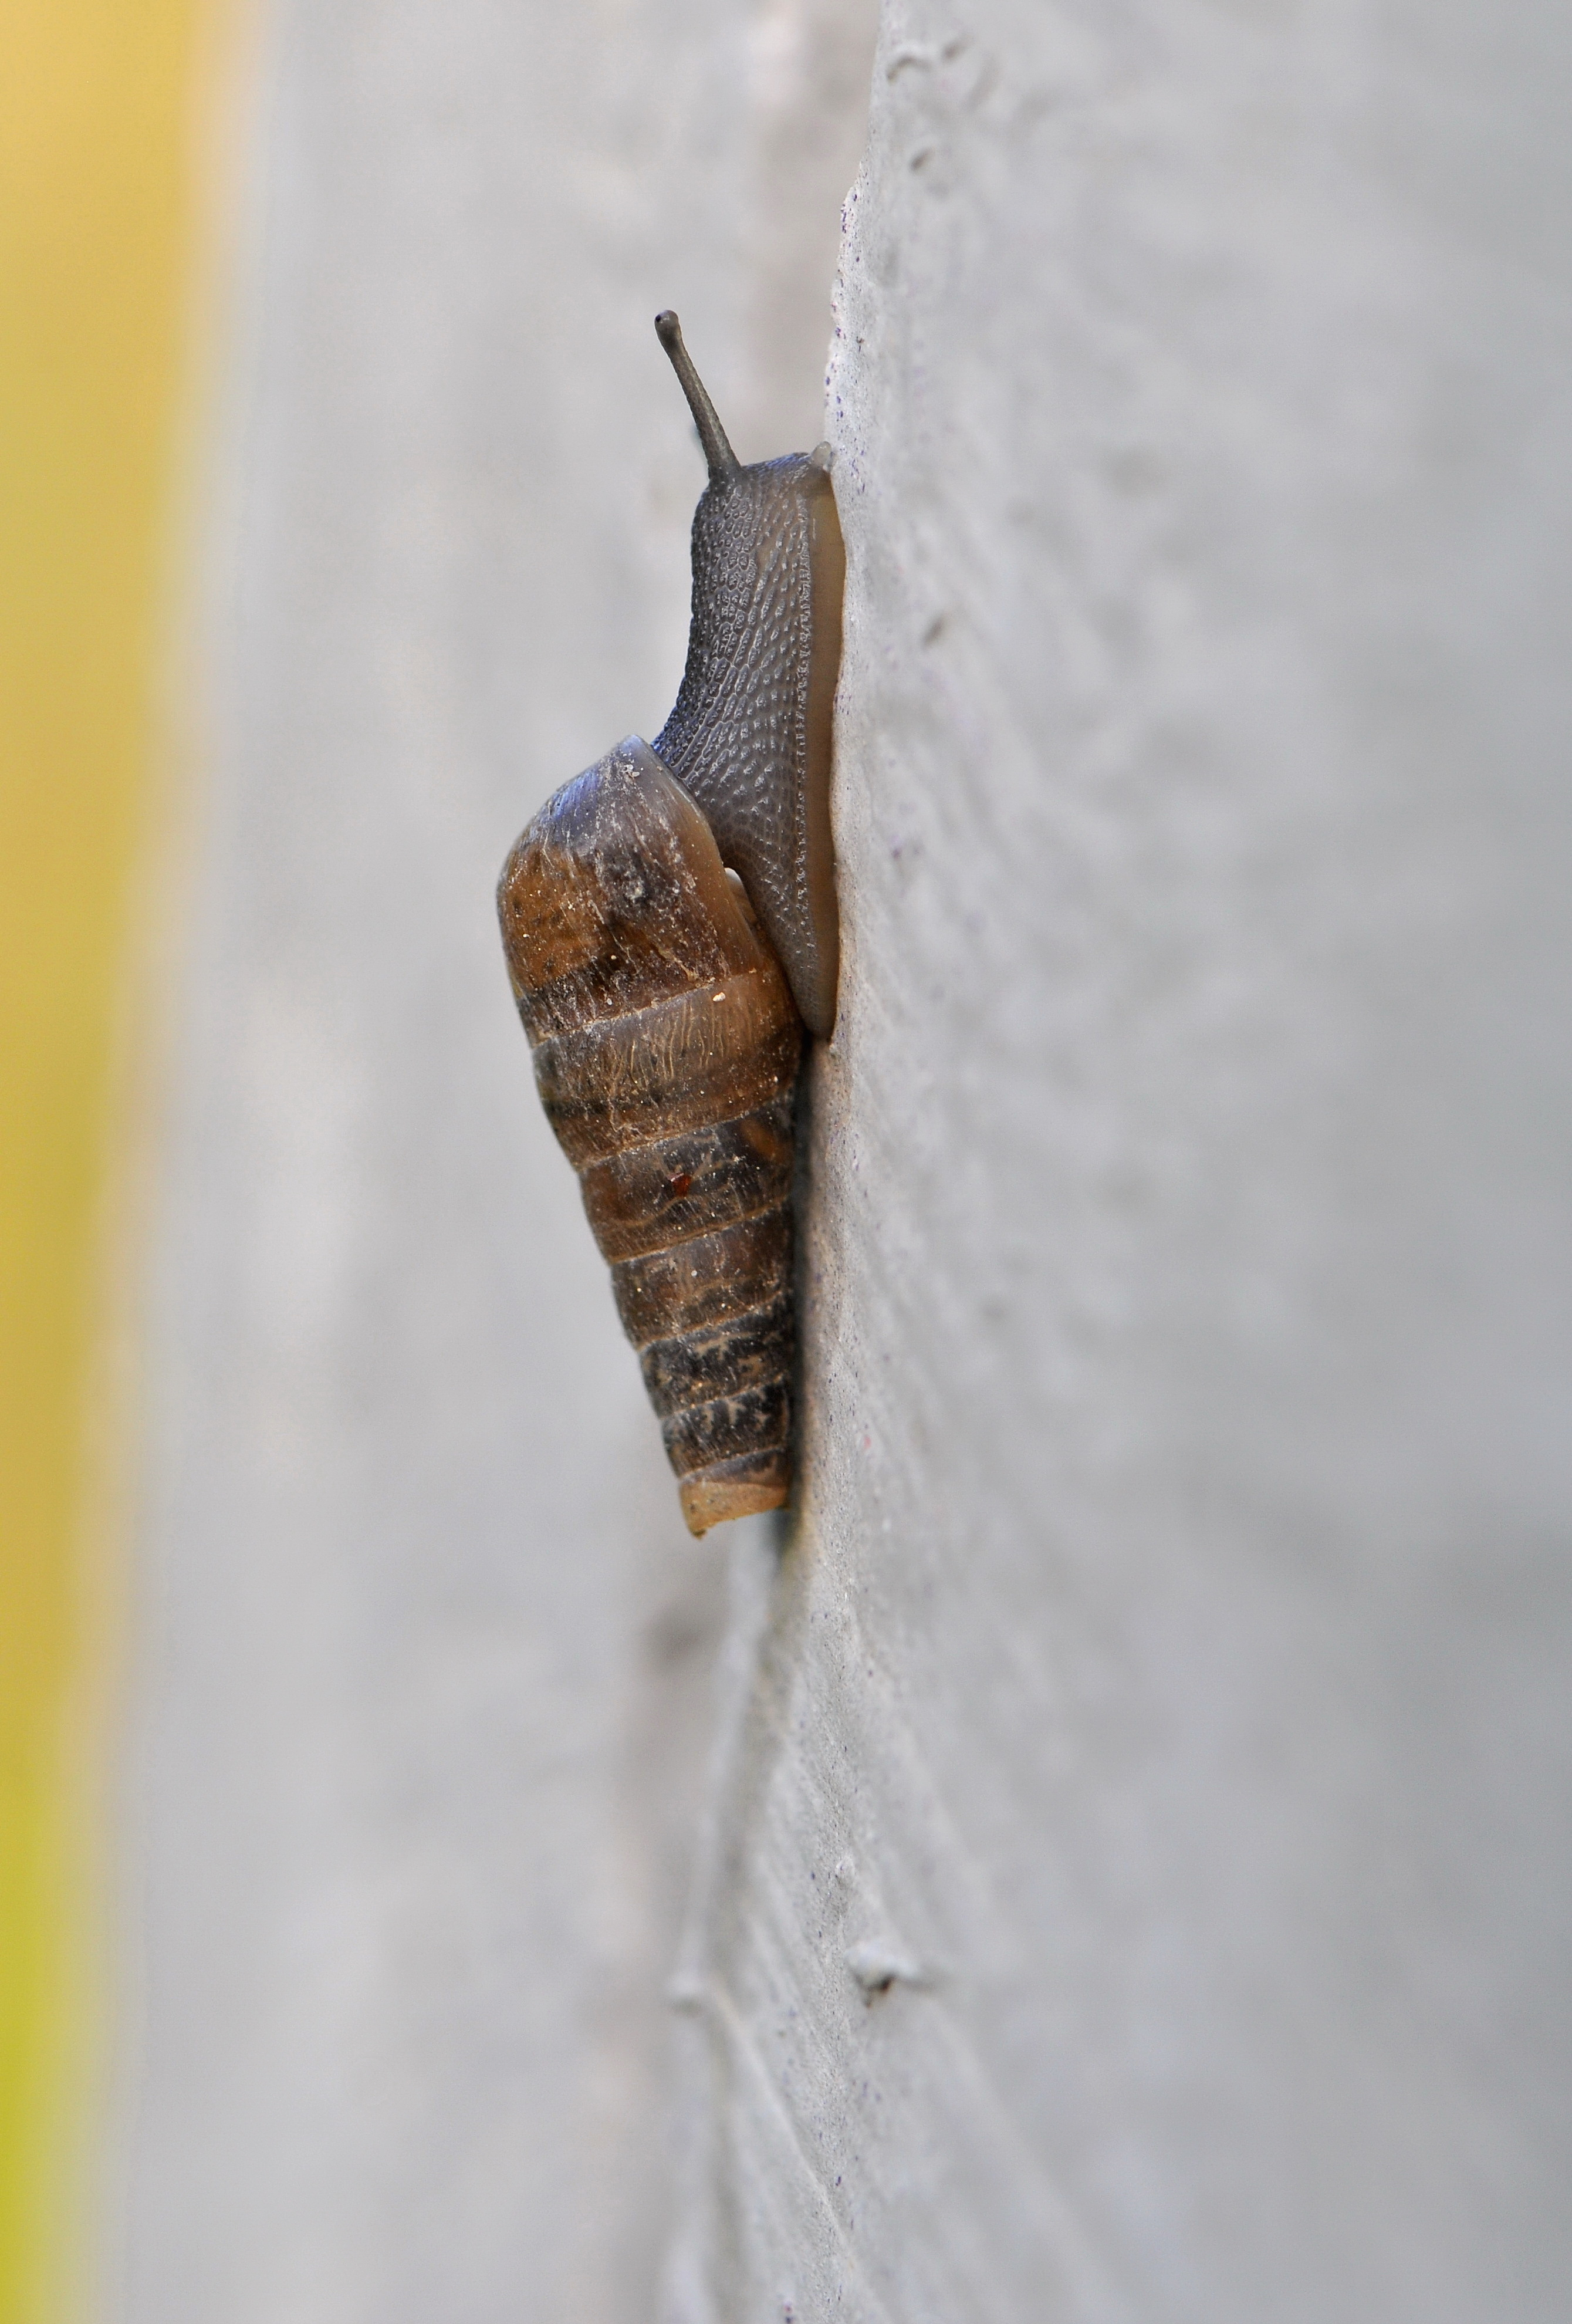 Image of Decollate snail